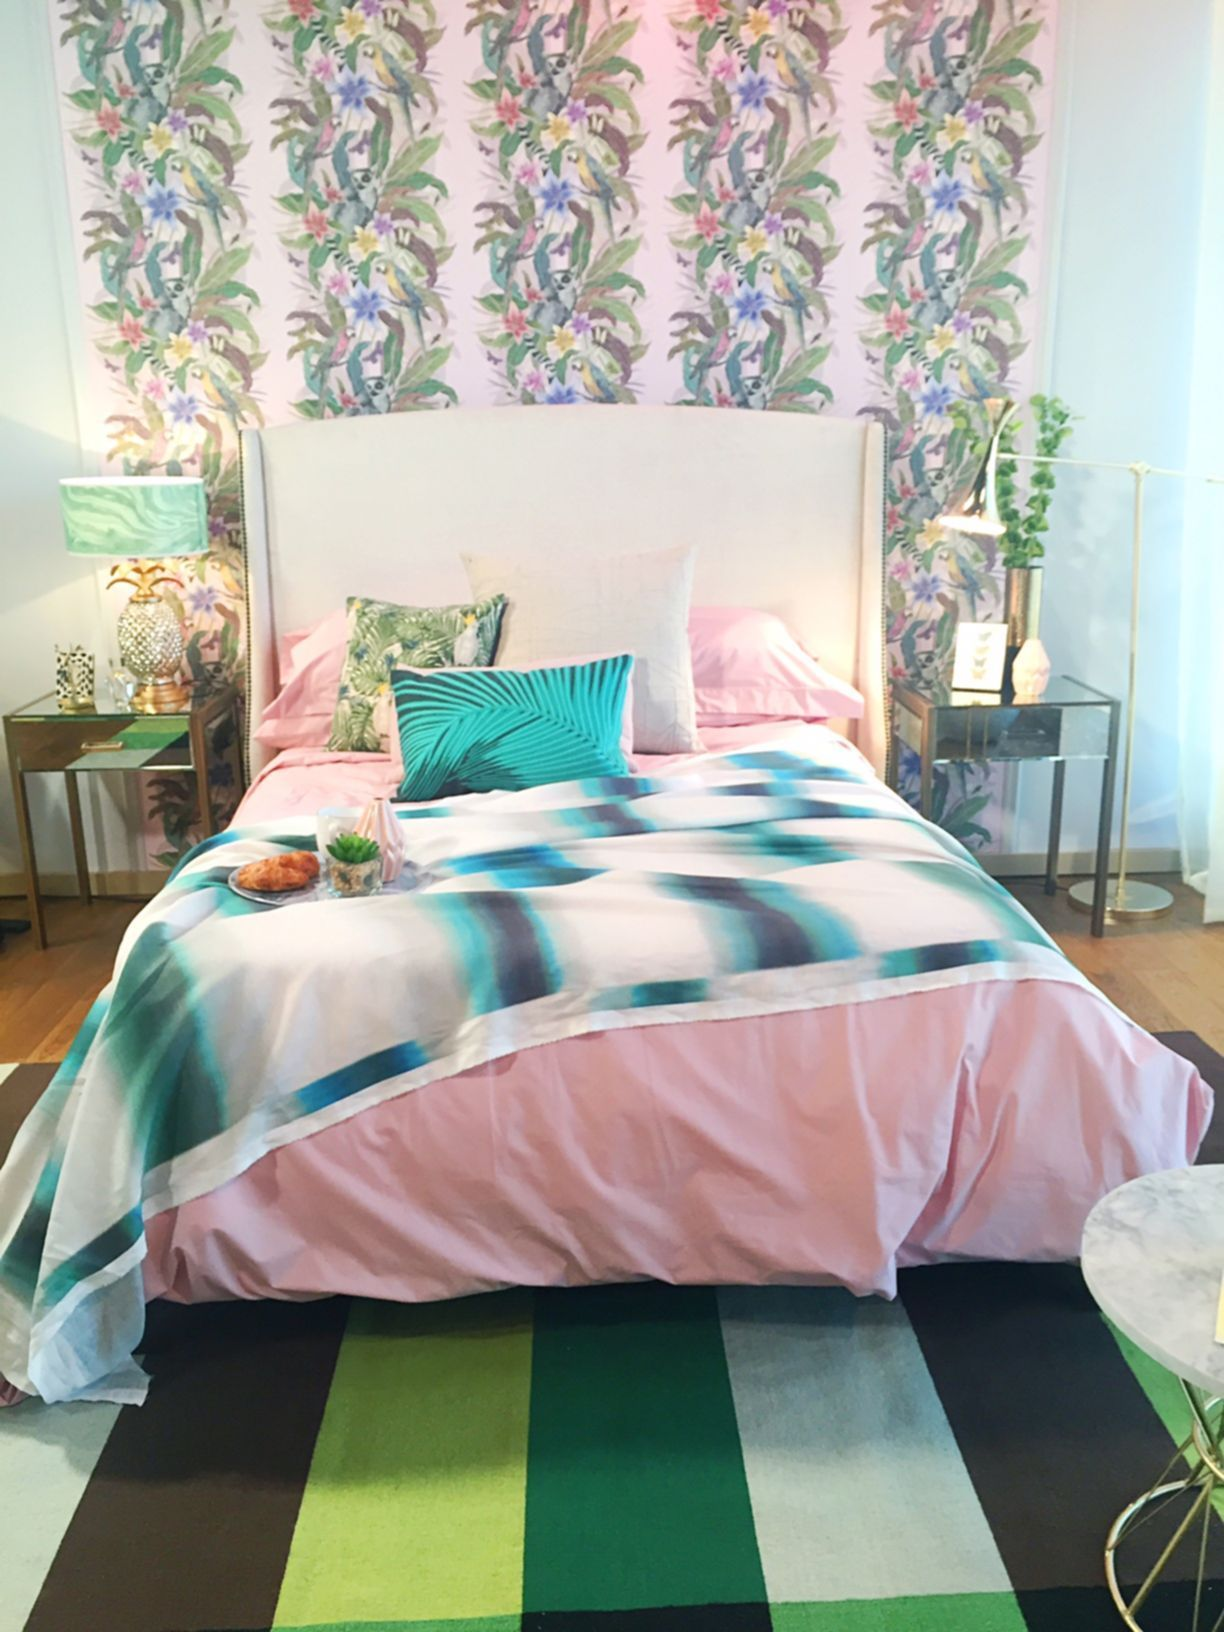 Chic tropical bedroom